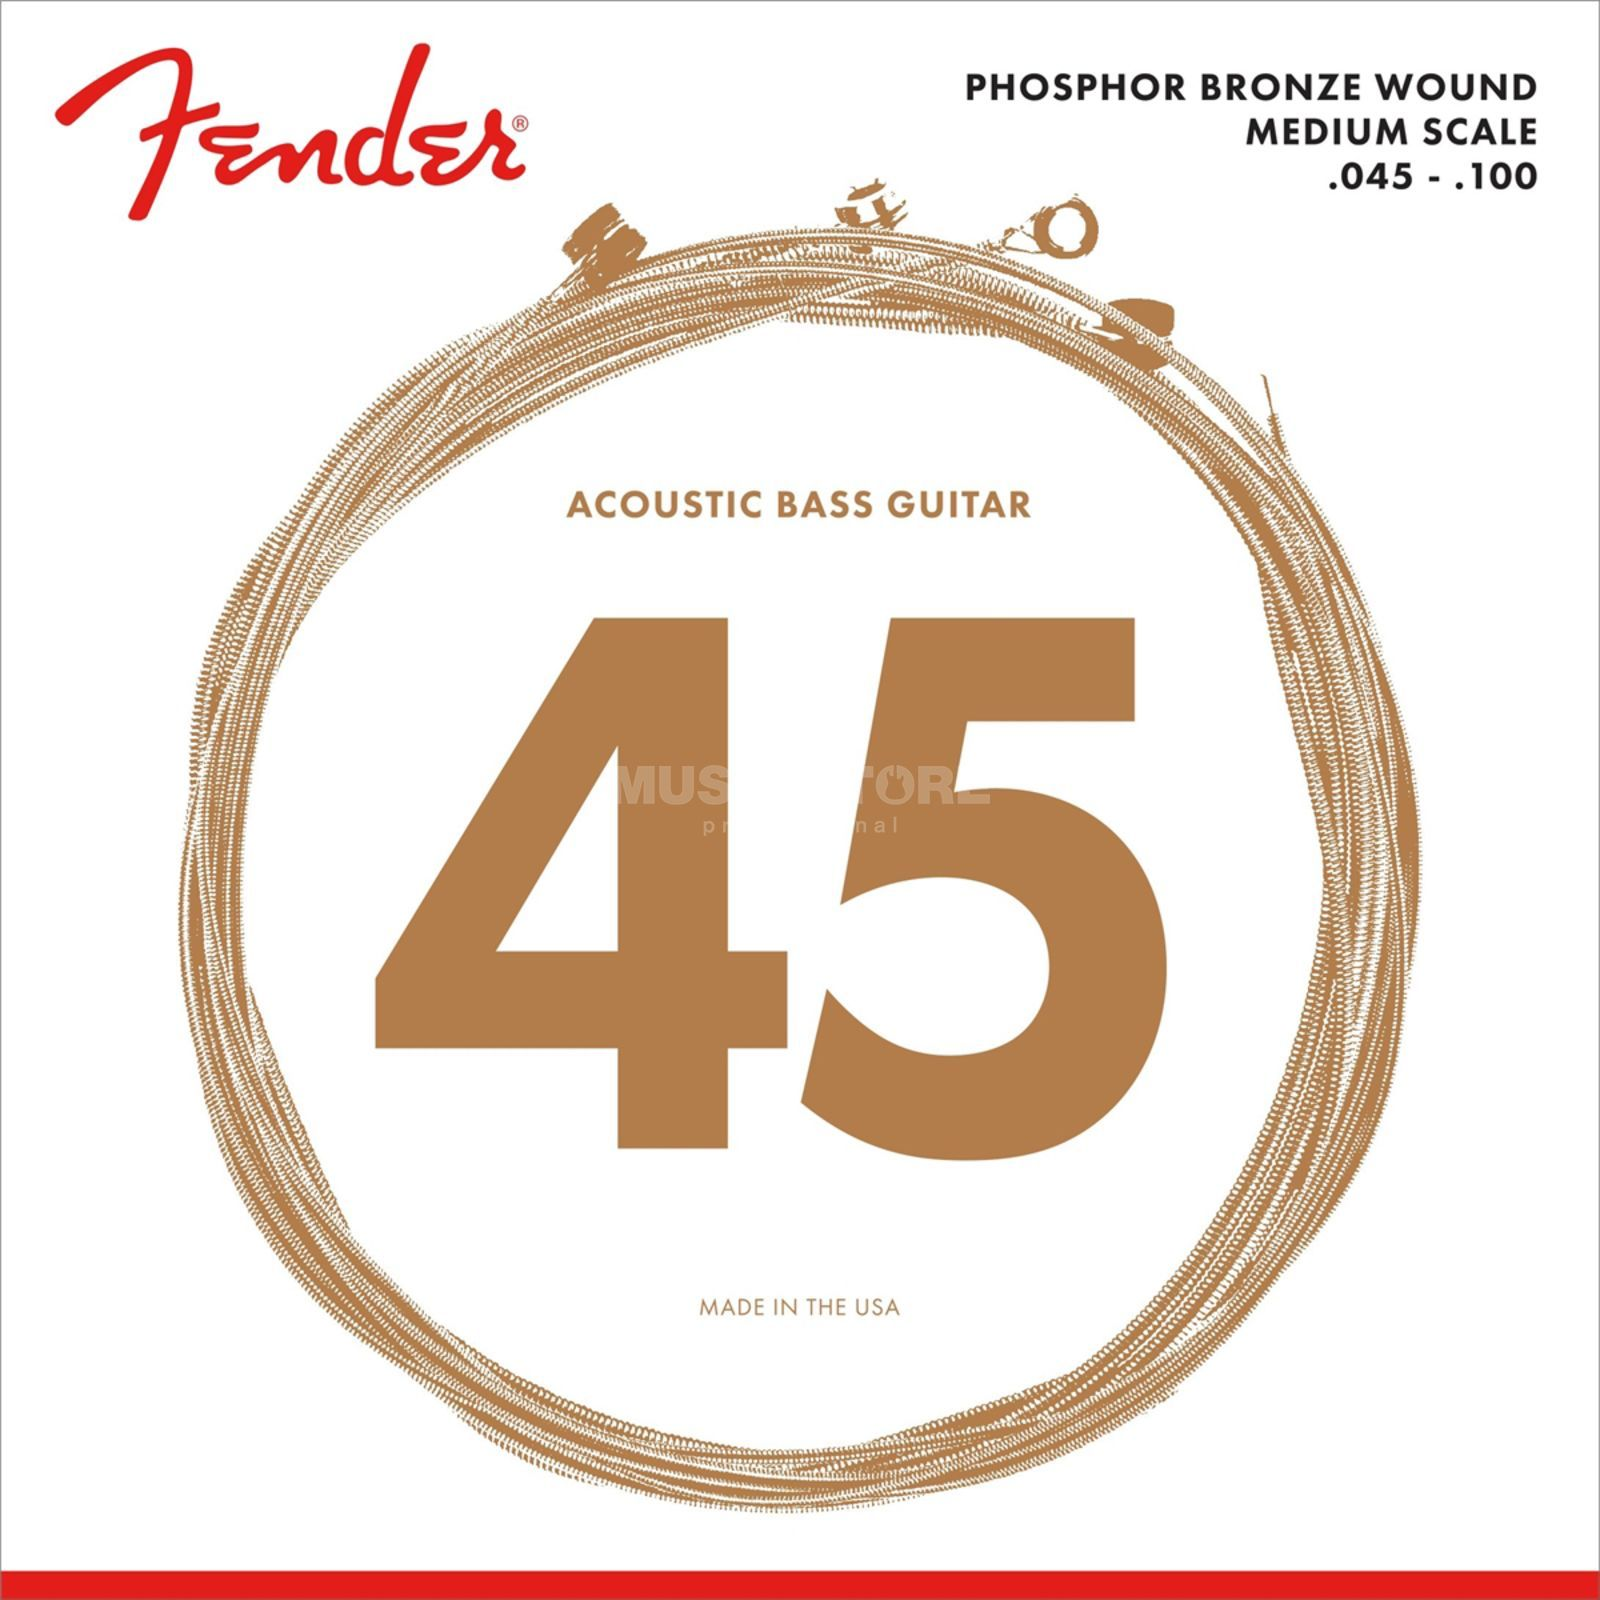 Fender 7060 Phosphor Bronze Acoustic Bass Strings Medium Scale 45-100 Imagem do produto